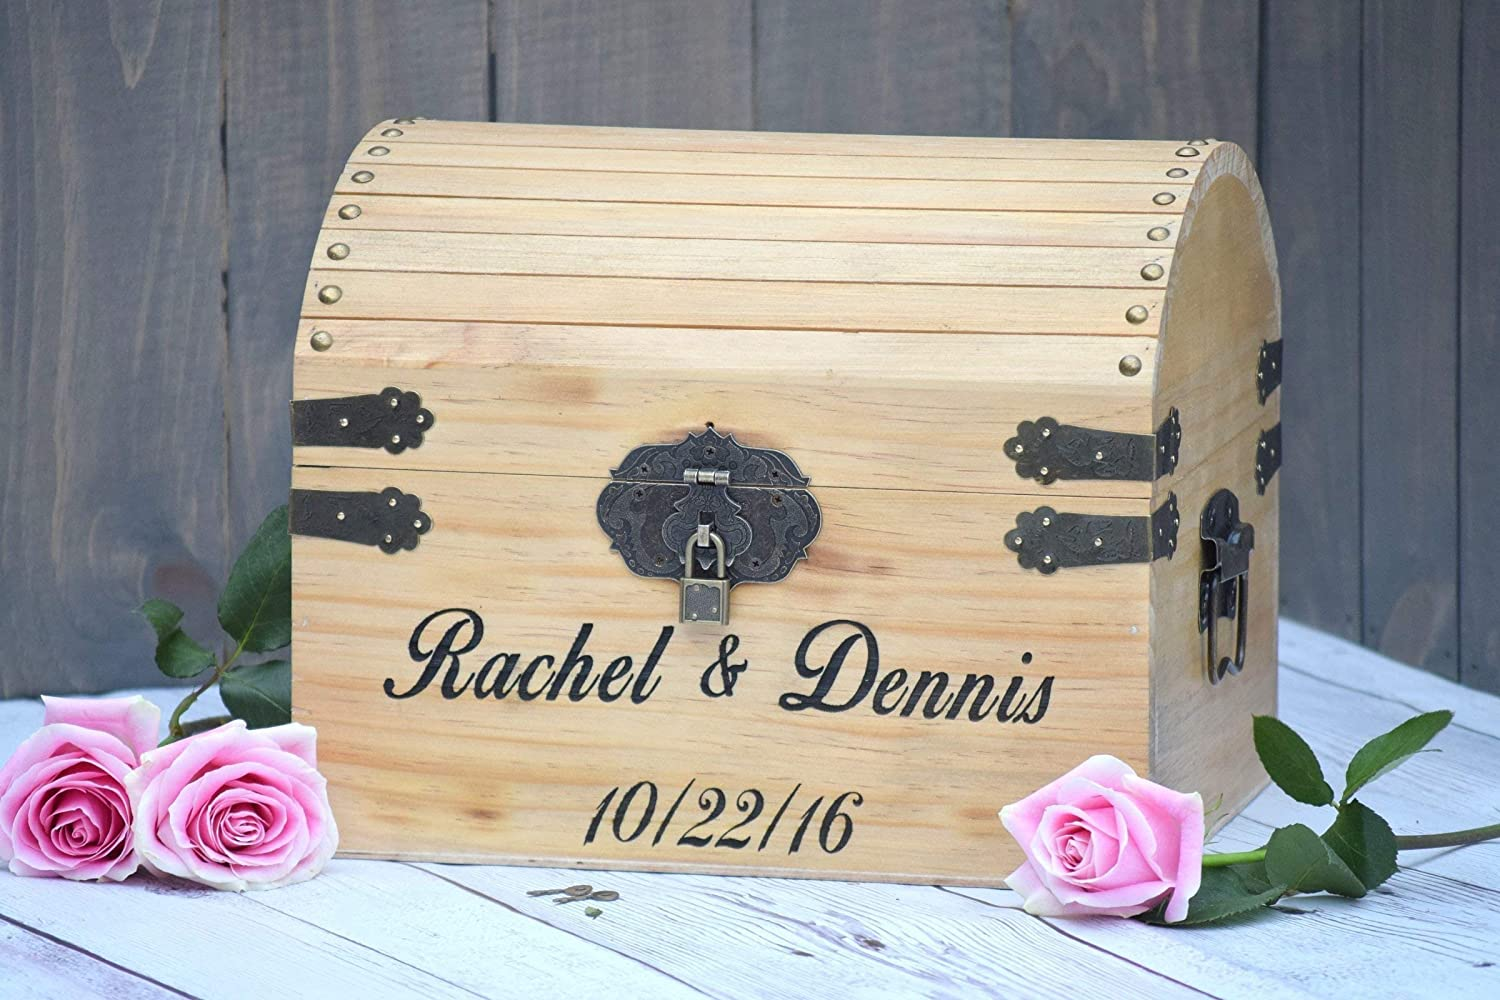 Rustic Wedding Card Chest Personalized Gift Wedding Card Holder Rustic Wedding Decor Personalized Card Box Lockable Engraved Wooden Card and Memory Chest